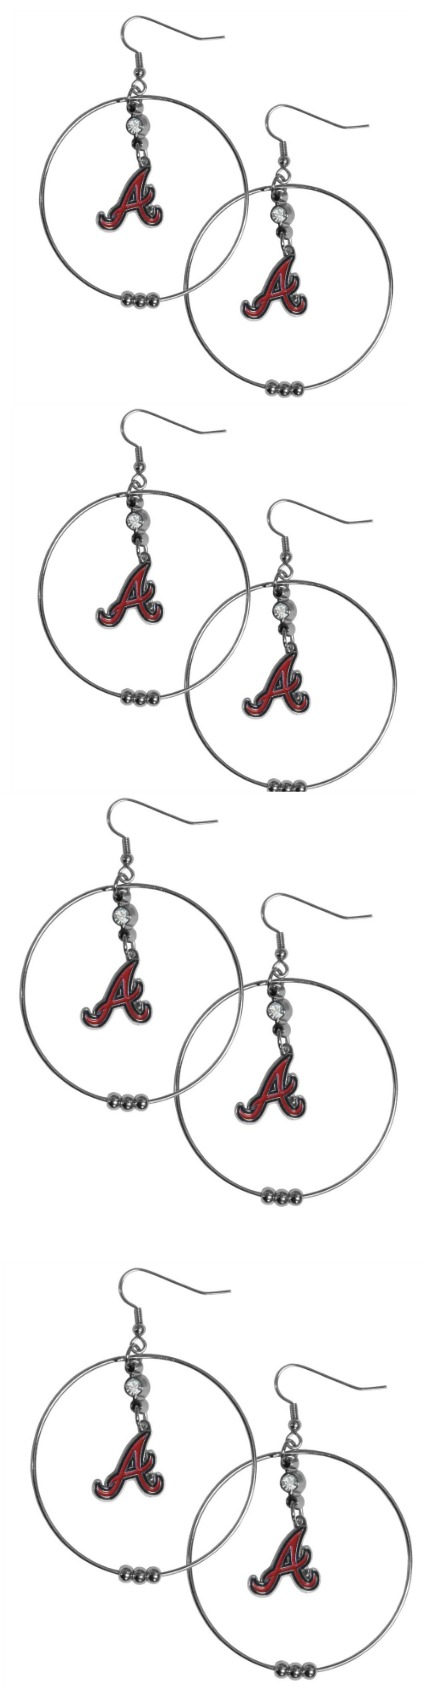 Atlanta Braves 2 Inch Hoop Earrings! Click The Image To Buy It Now or Tag Someone You Want To Buy This For. #AtlantaBraves